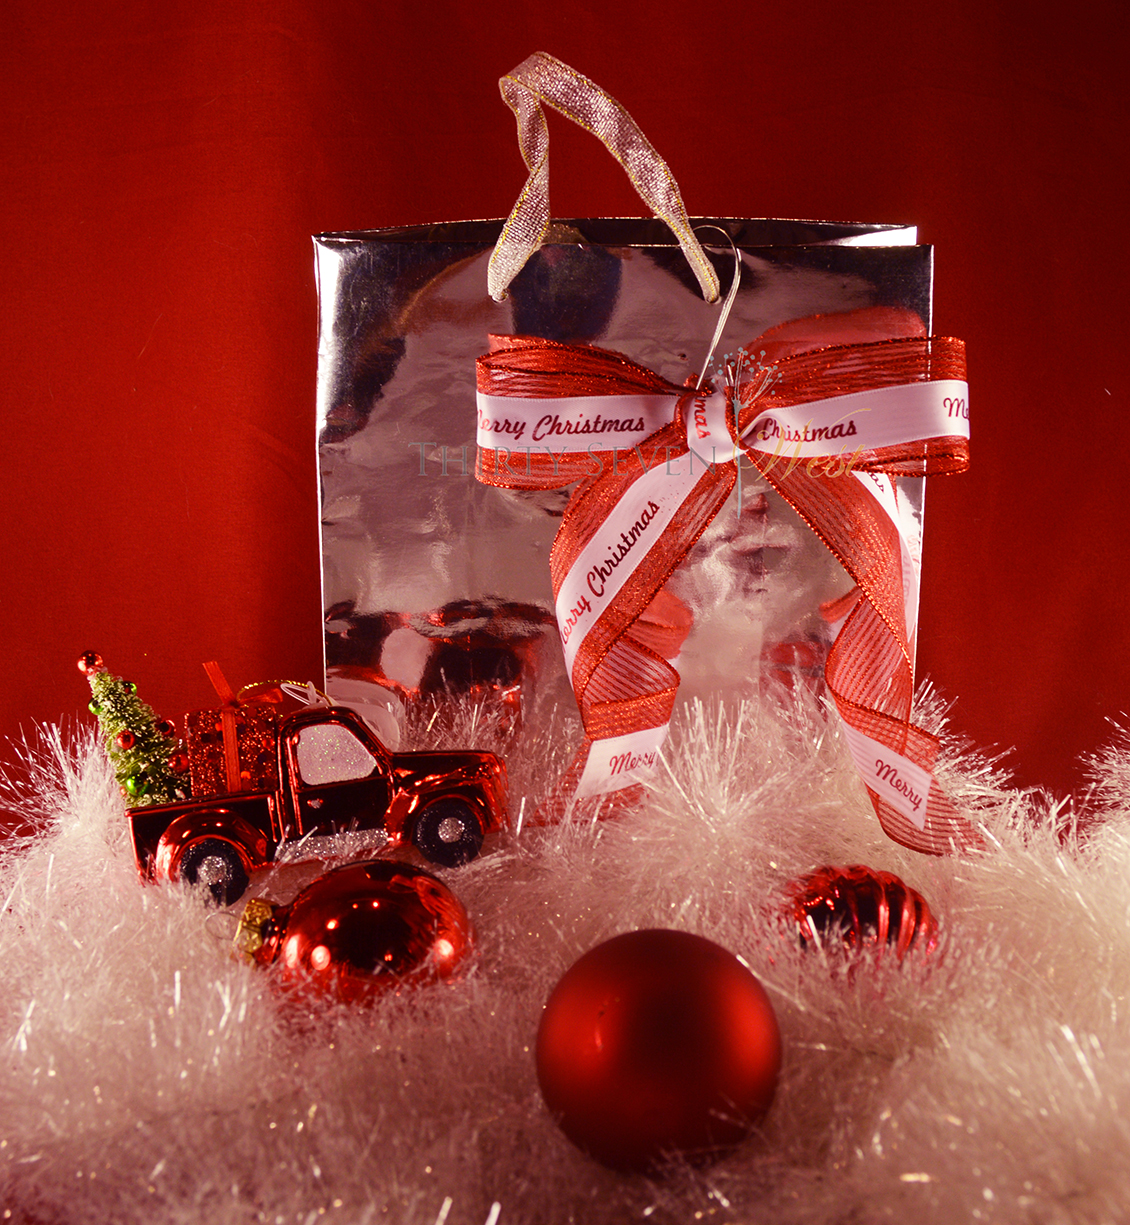 ideas-for-gift-wrapping.-silver-metallic-gift-bag.-personalized-custom-printed-ribbon-with-logo.-red-and-white-ribbon..jpg